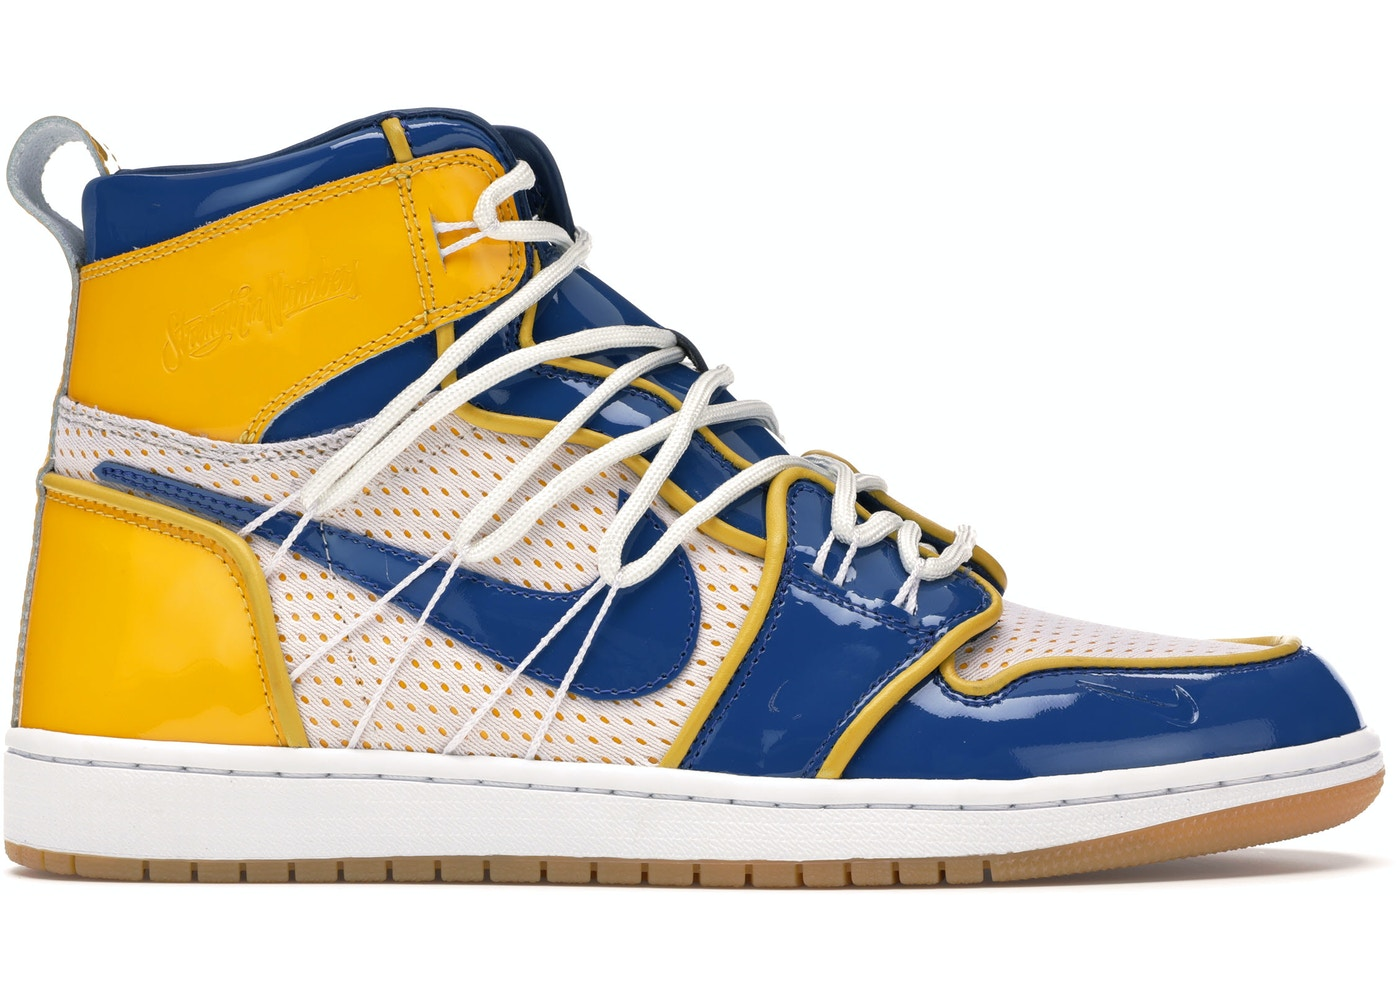 082510dd84a Golden State Warriors x Shoe Surgeon Charity Campaign